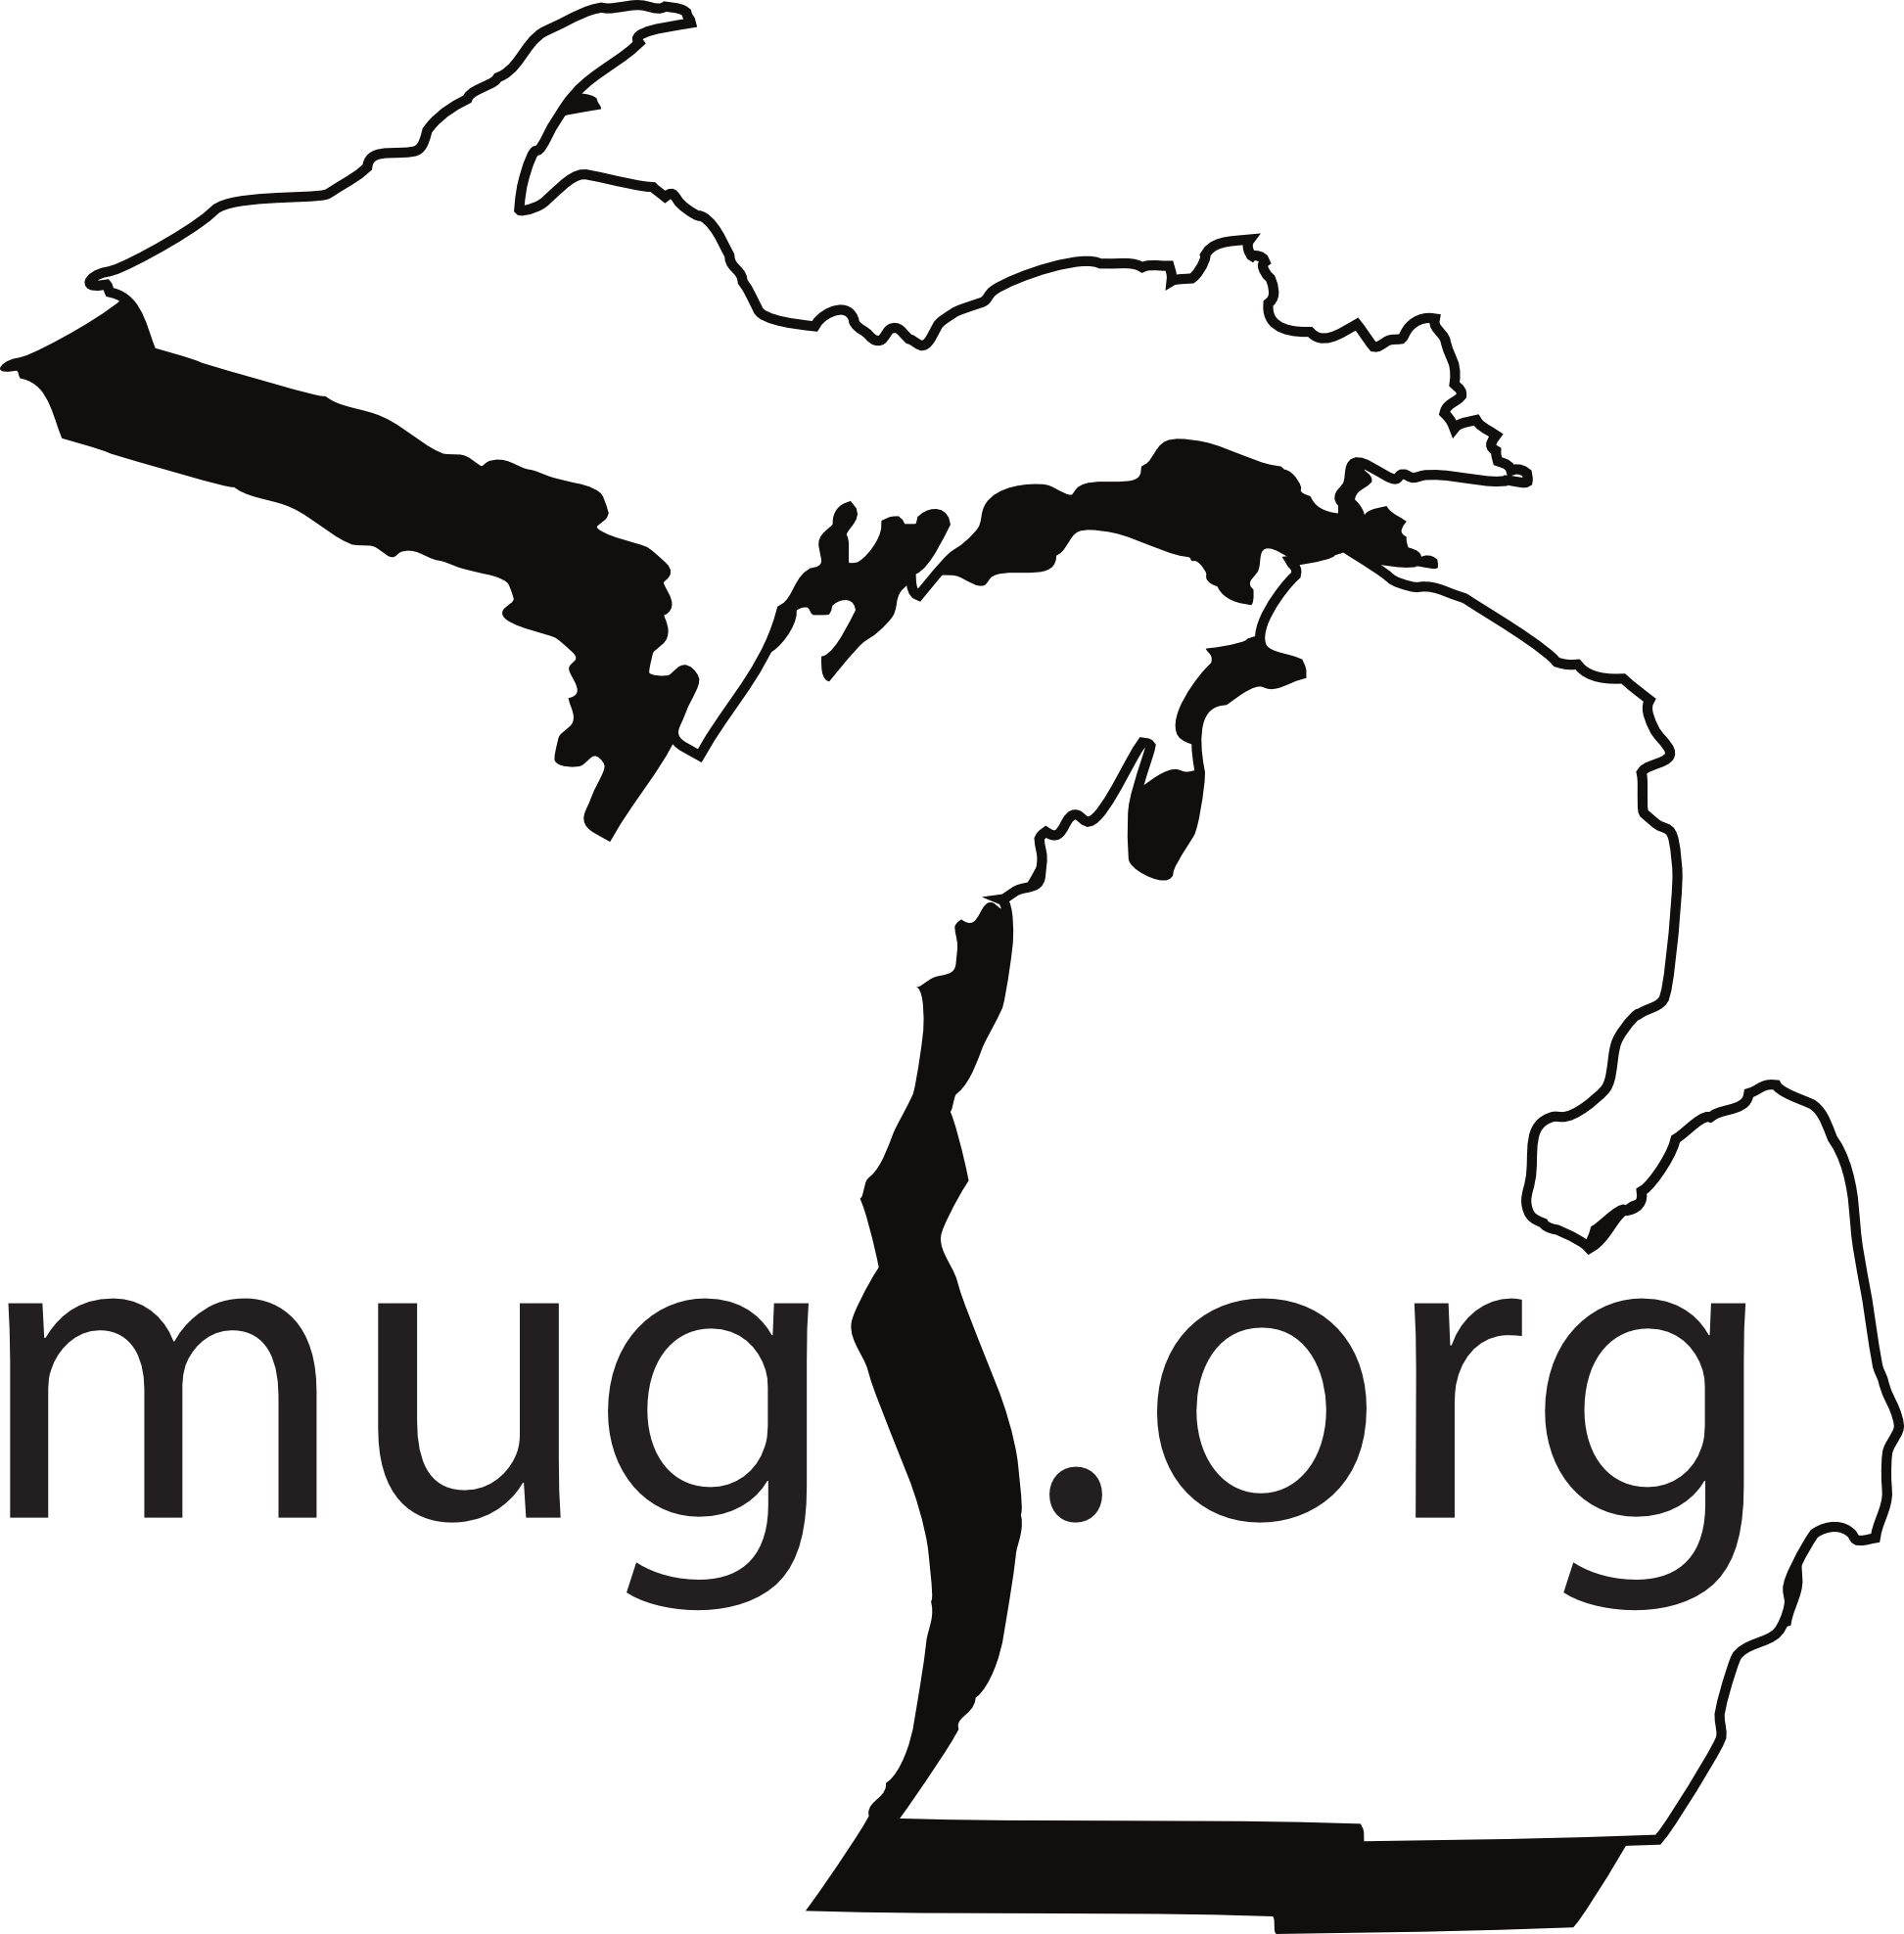 Michigan!/usr/group – UNIX/Linux users group (MUG)